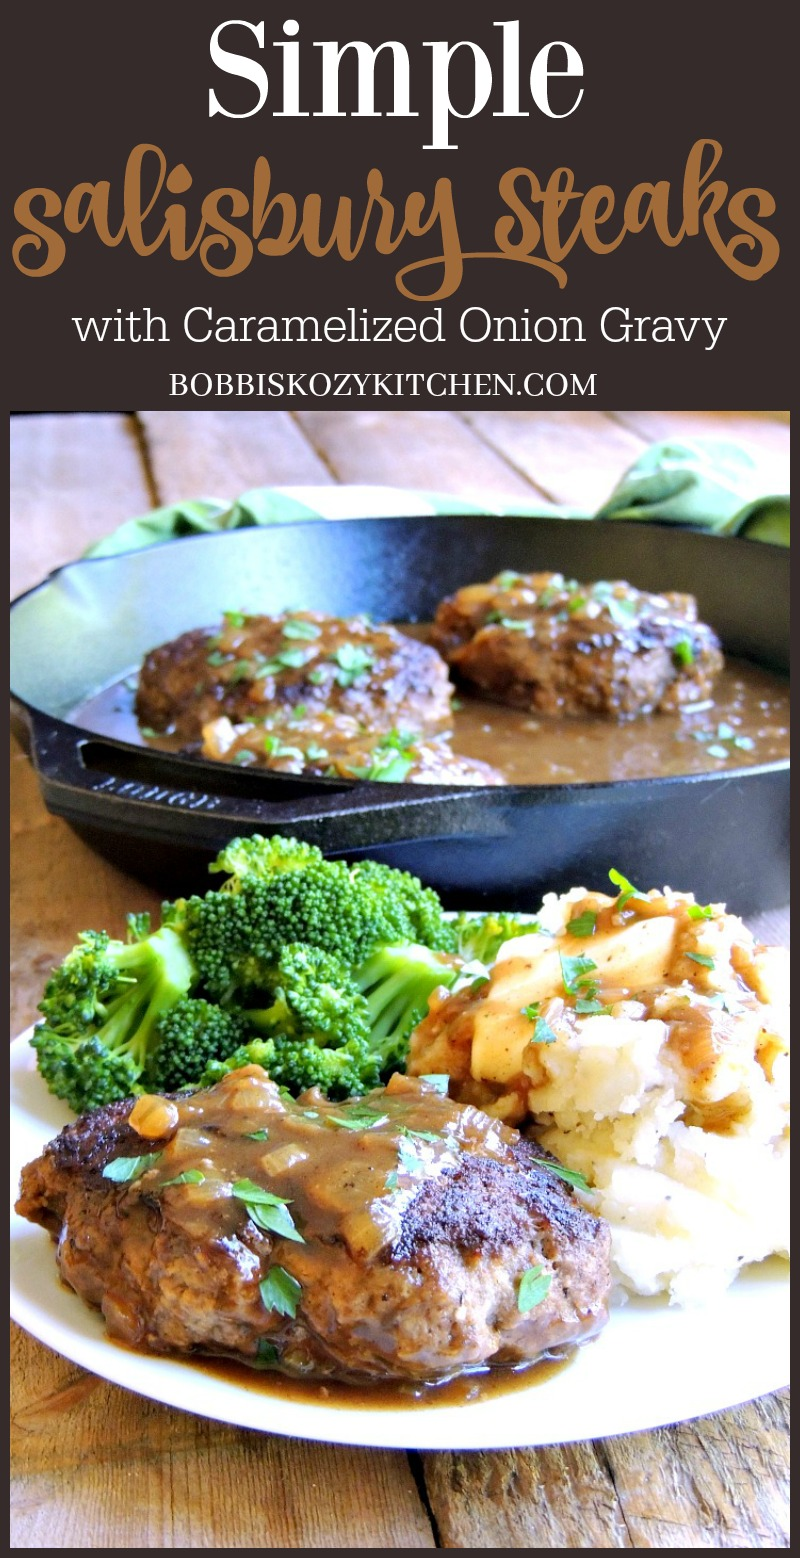 This Simple Salisbury Steak recipe turns that classic TV dinner into something you can be proud to serve your family from www.bobbiskozykitchen.com